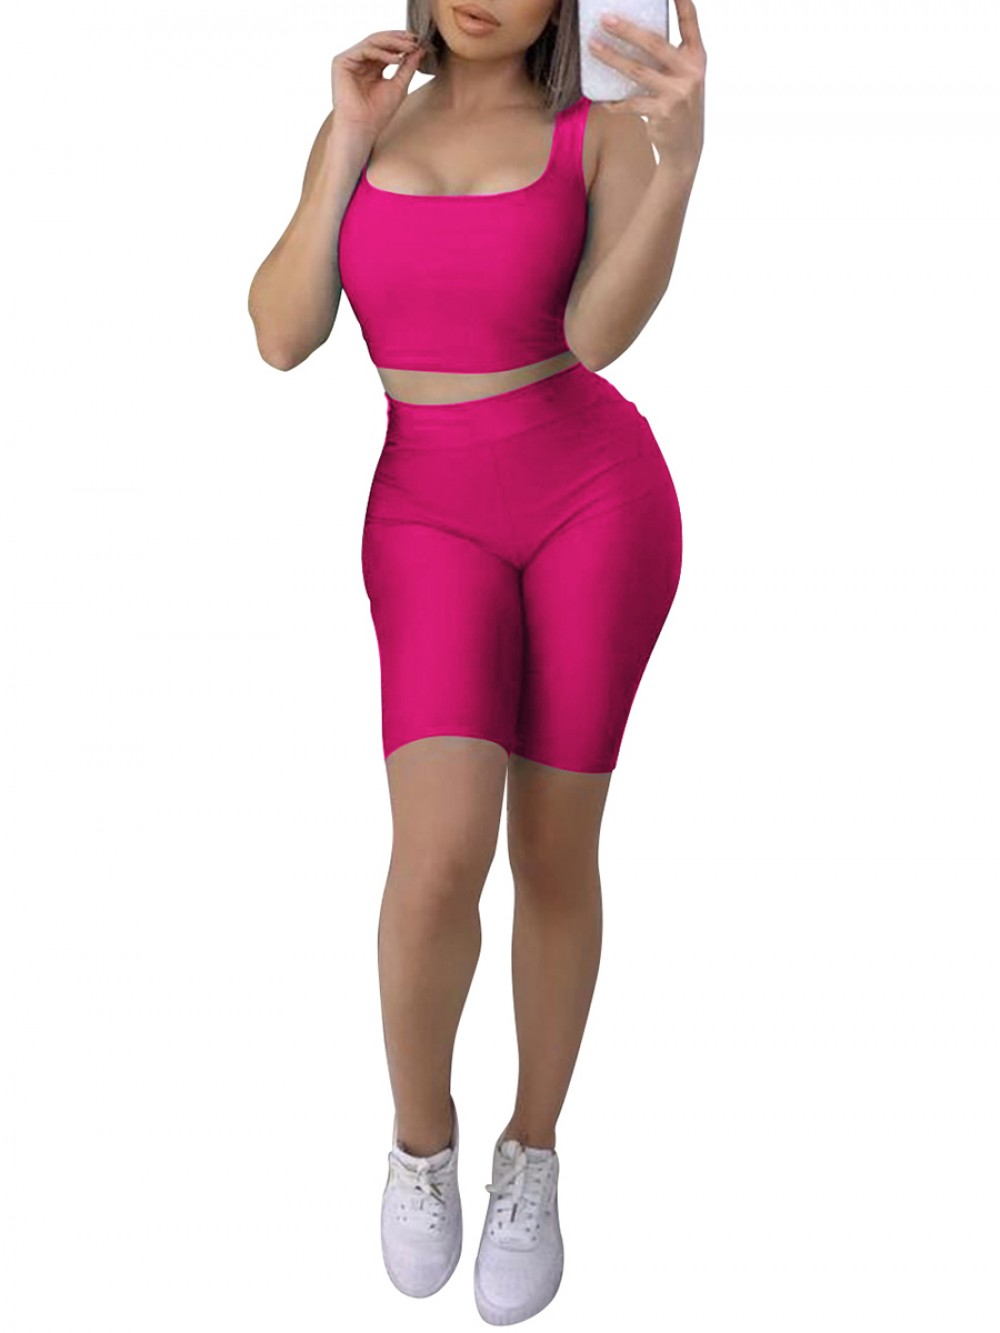 Awesome Rose Red Yoga Top Crop High Waist Shorts Suit Sheath